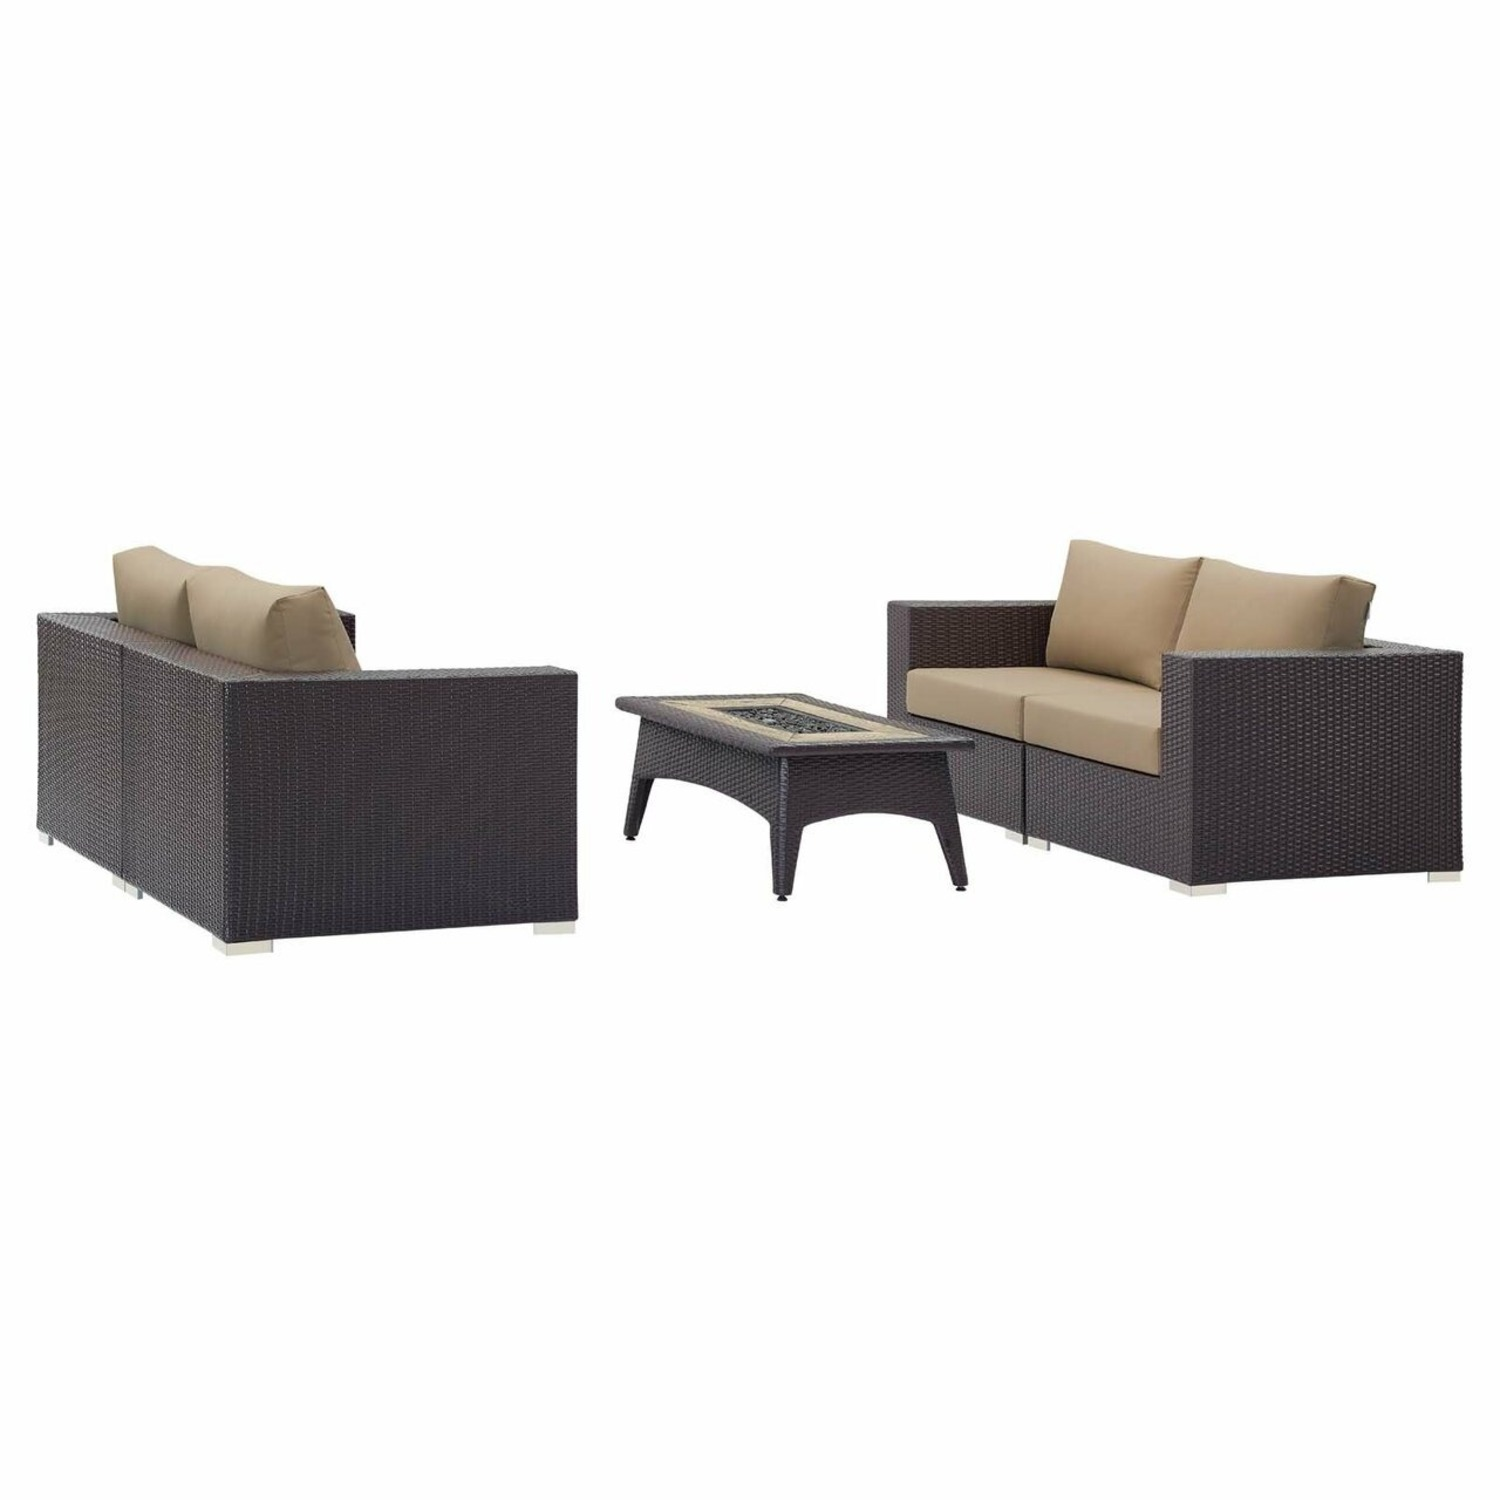 5-Piece Outdoor Sectional In Mocha Fabric Finish - image-1